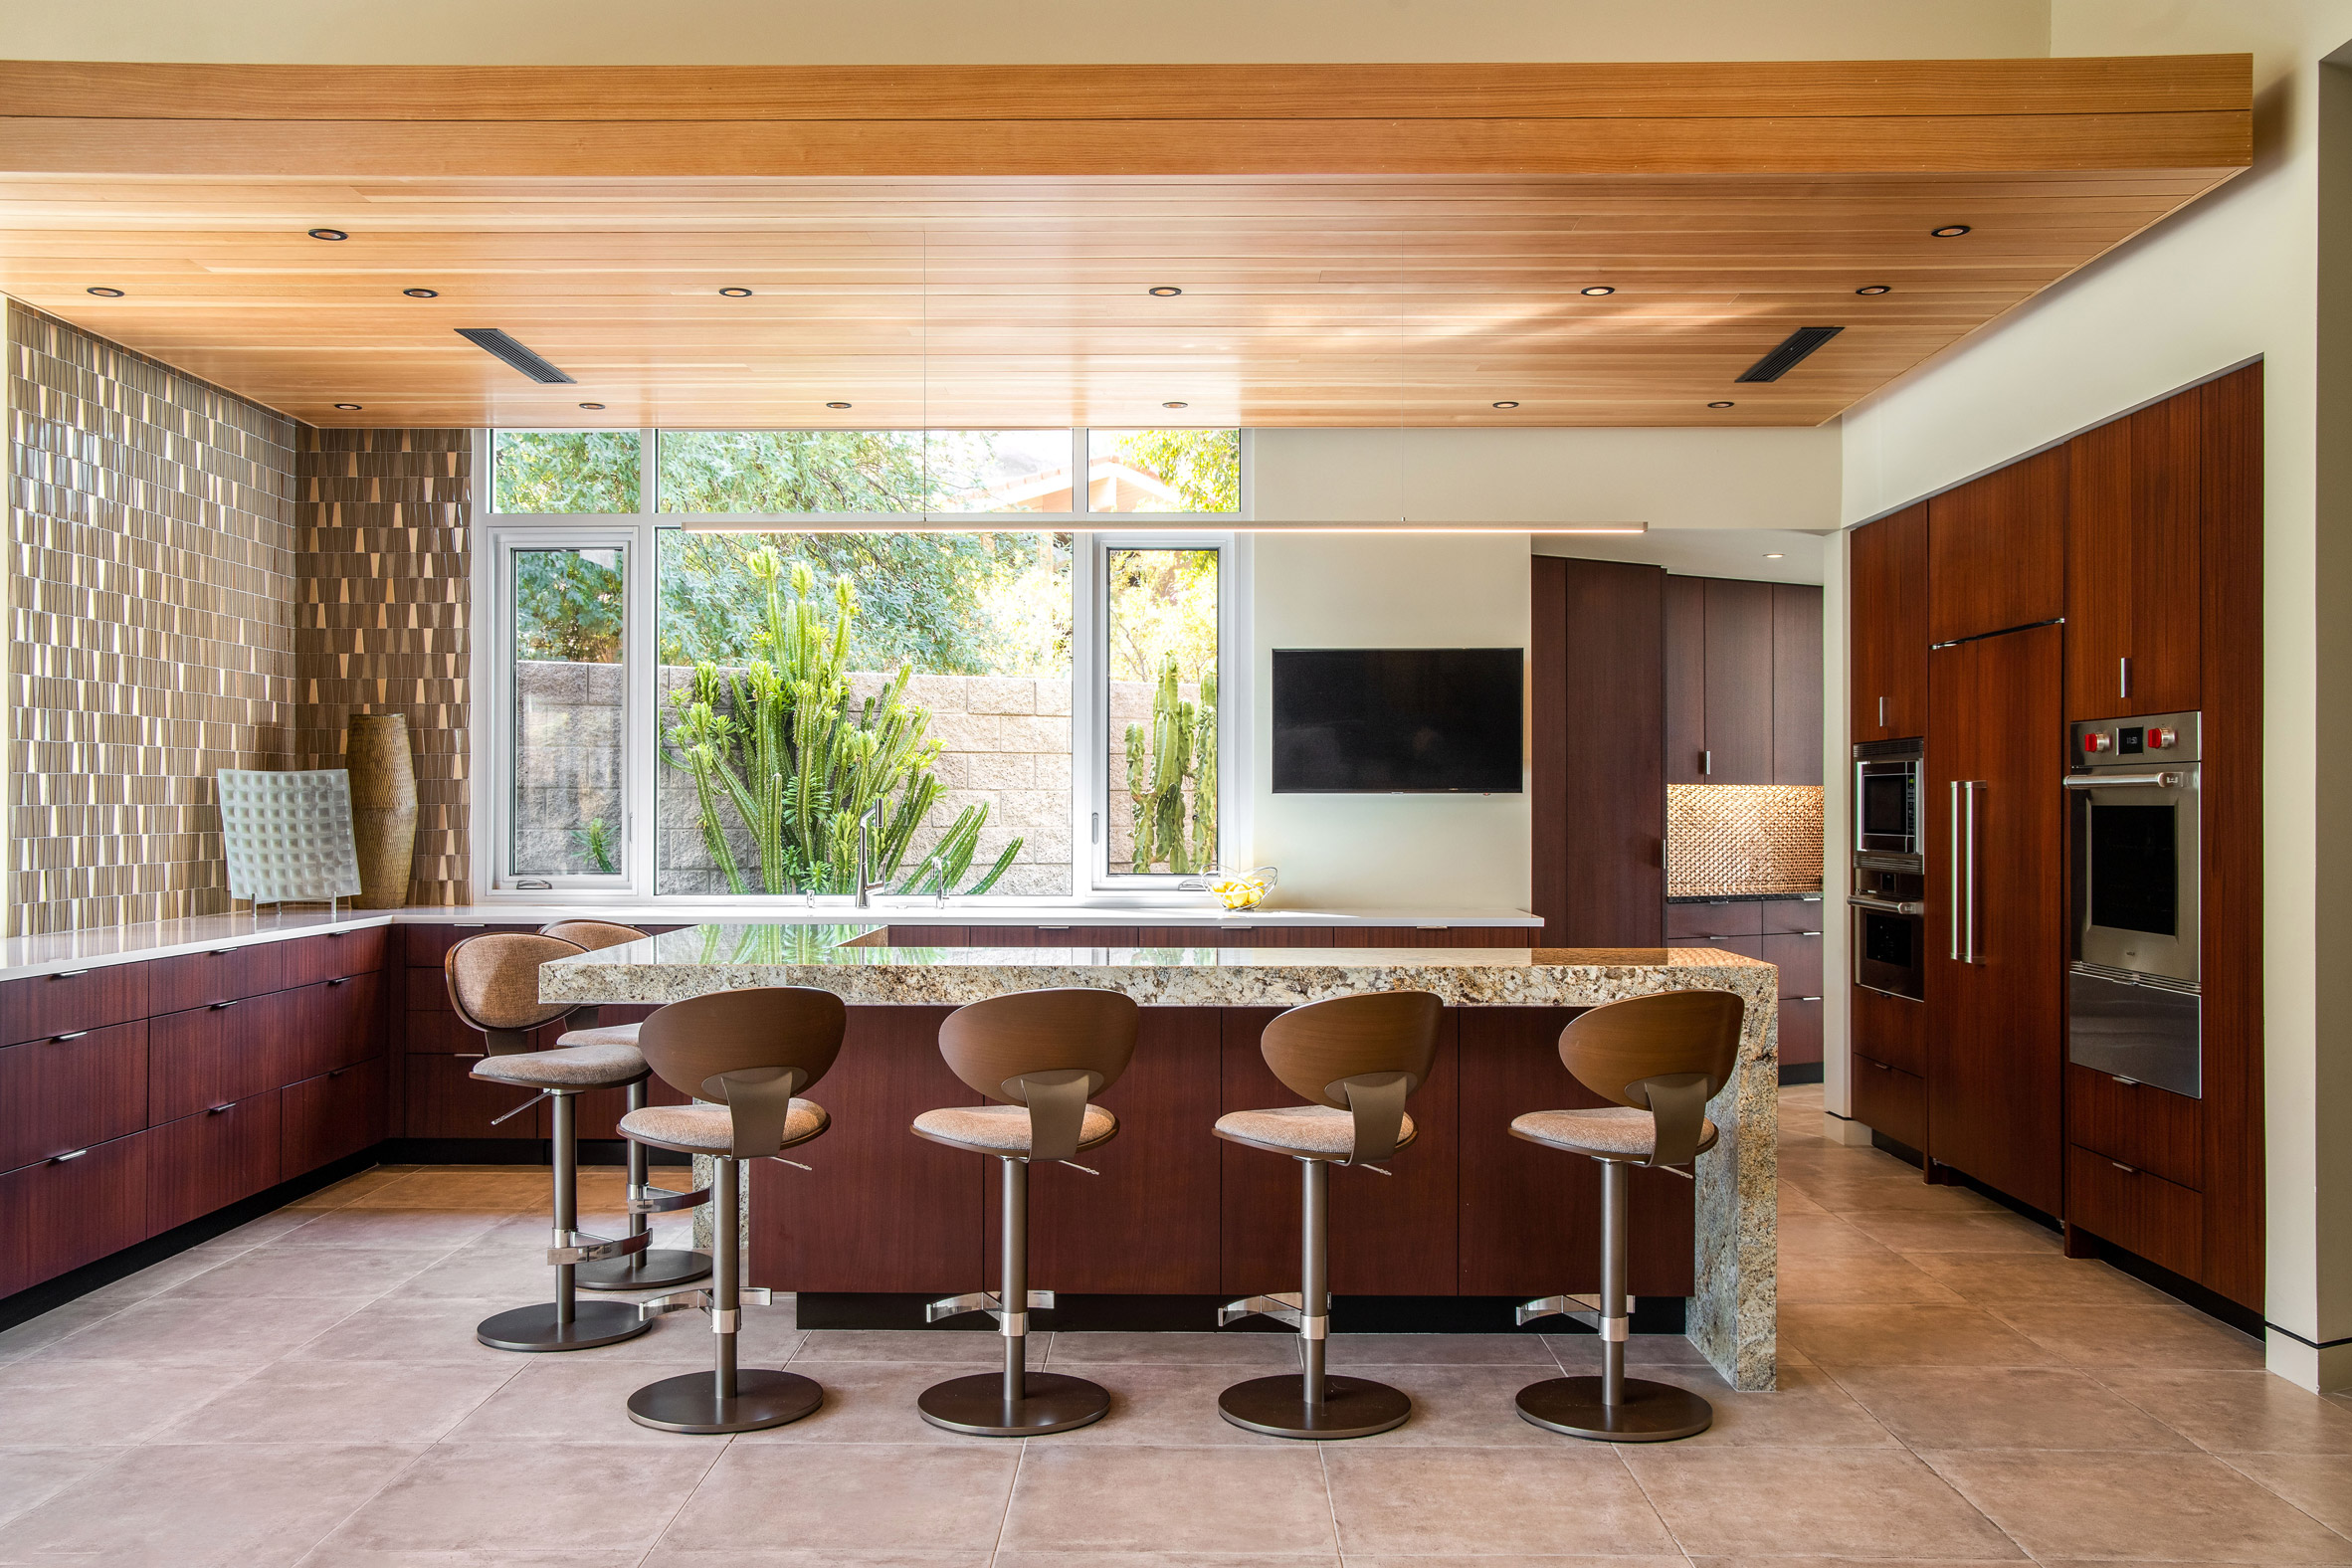 An earthy palette was used for the decor including the kitchen